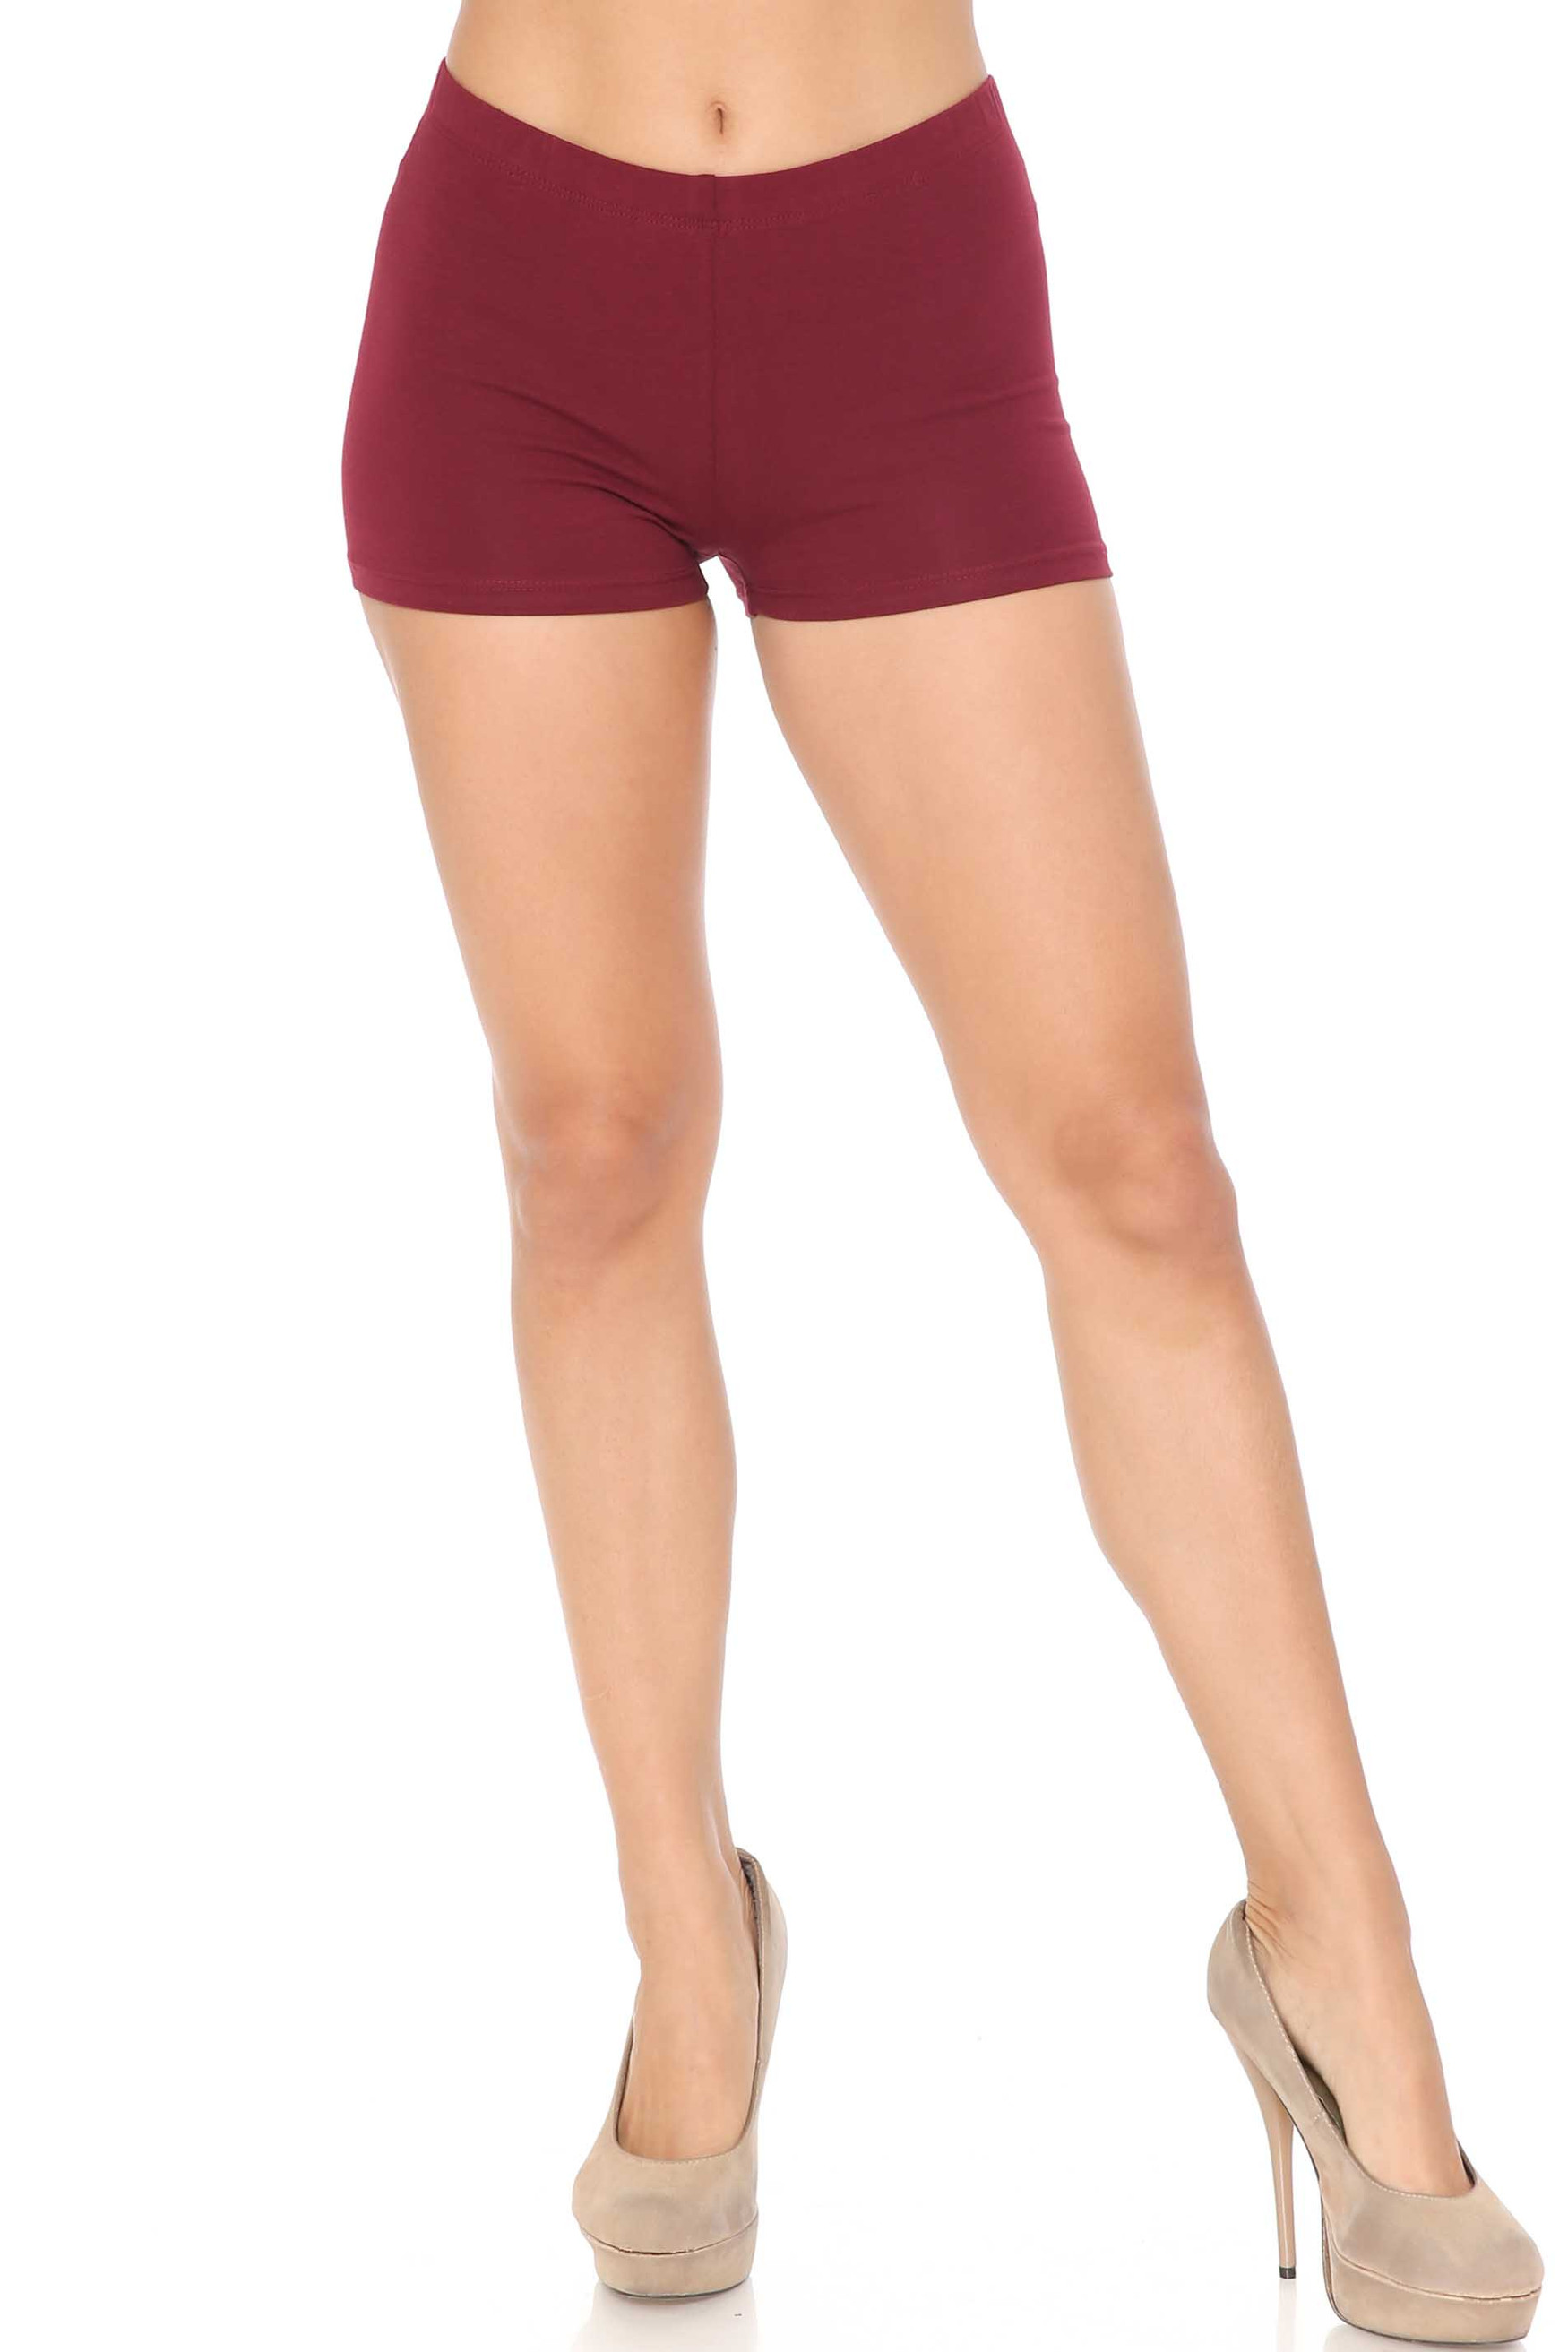 Front view of Burgundy USA Cotton Boy Shorts